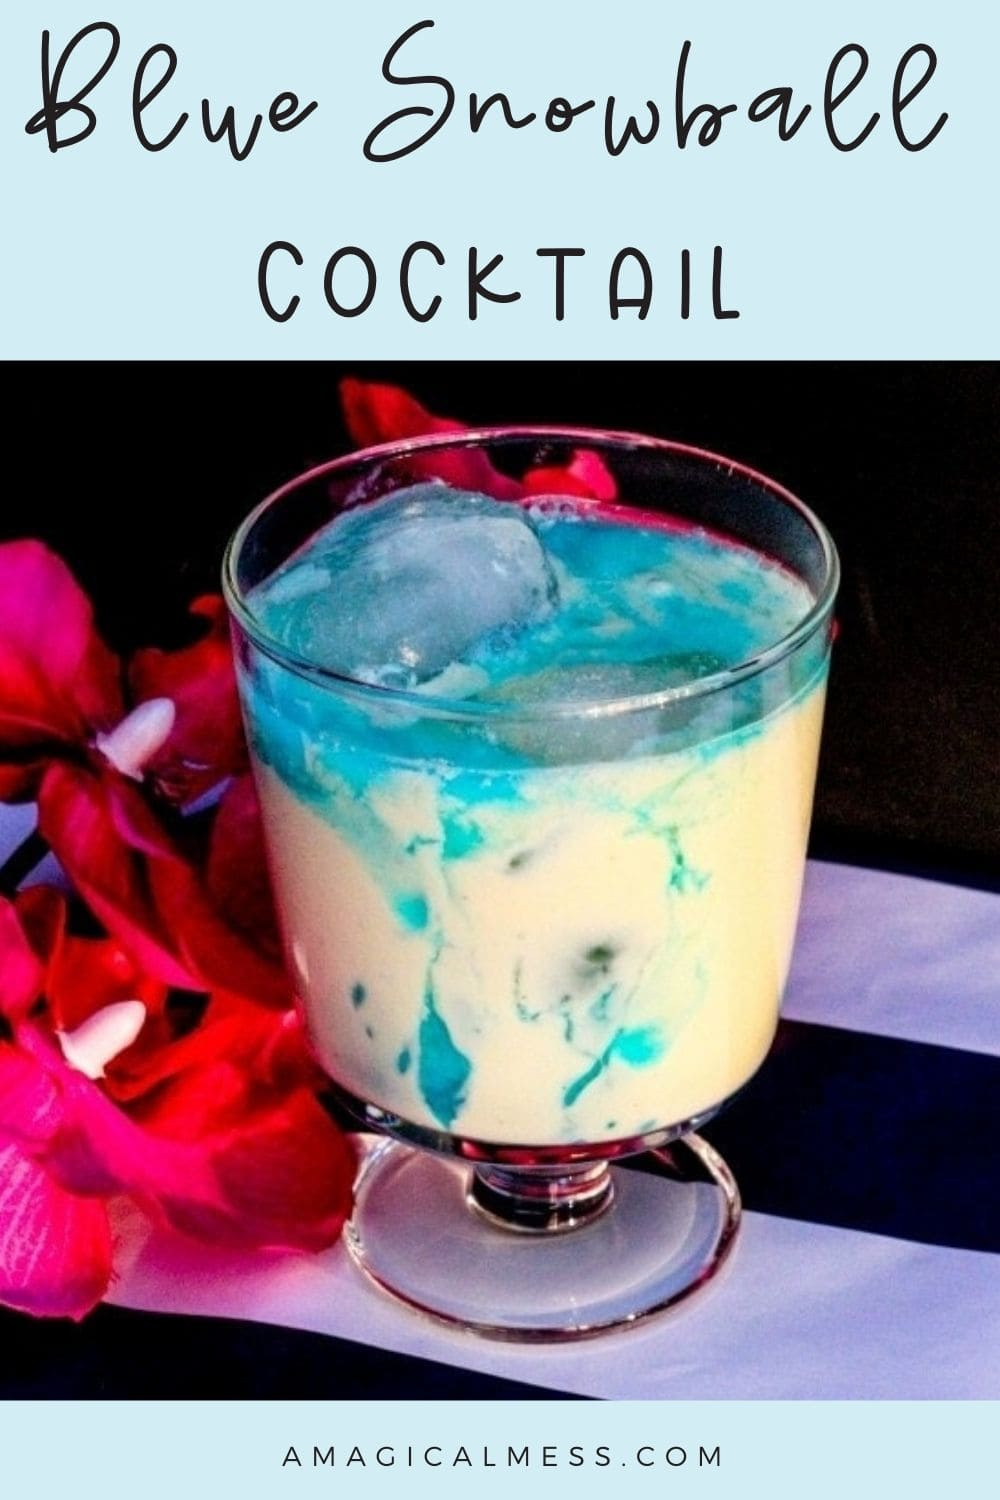 Mixed drink with blue swirls